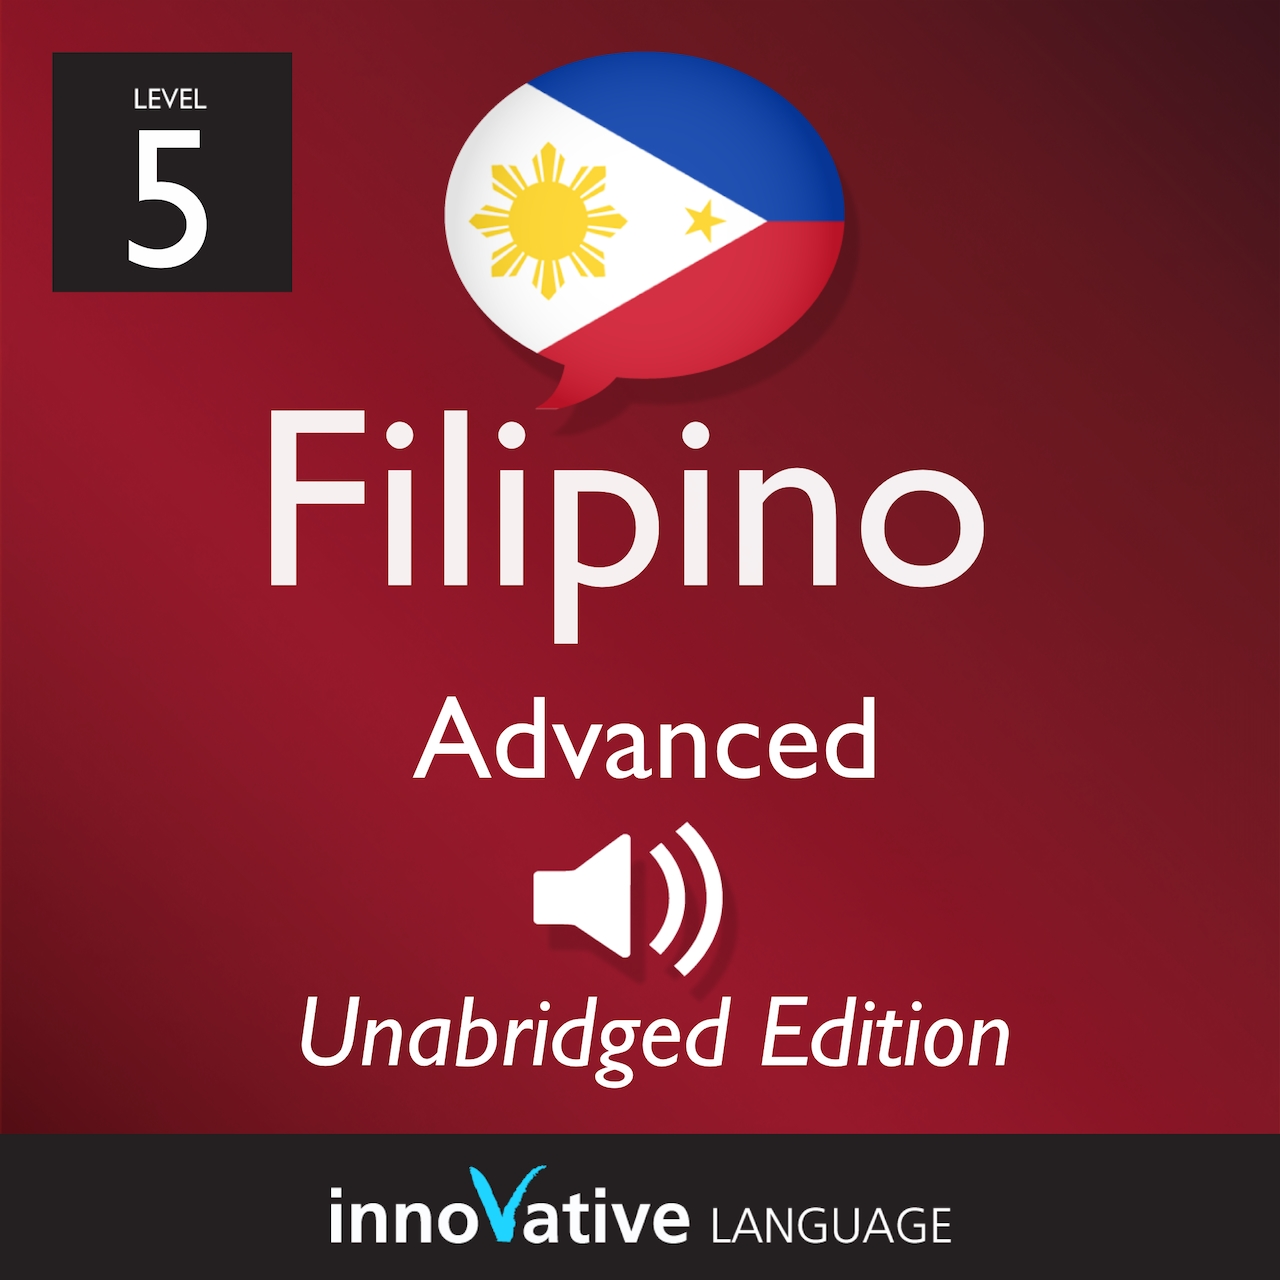 [Audiobook] Learn Filipino - Level 5: Advanced Filipino, Volume 1